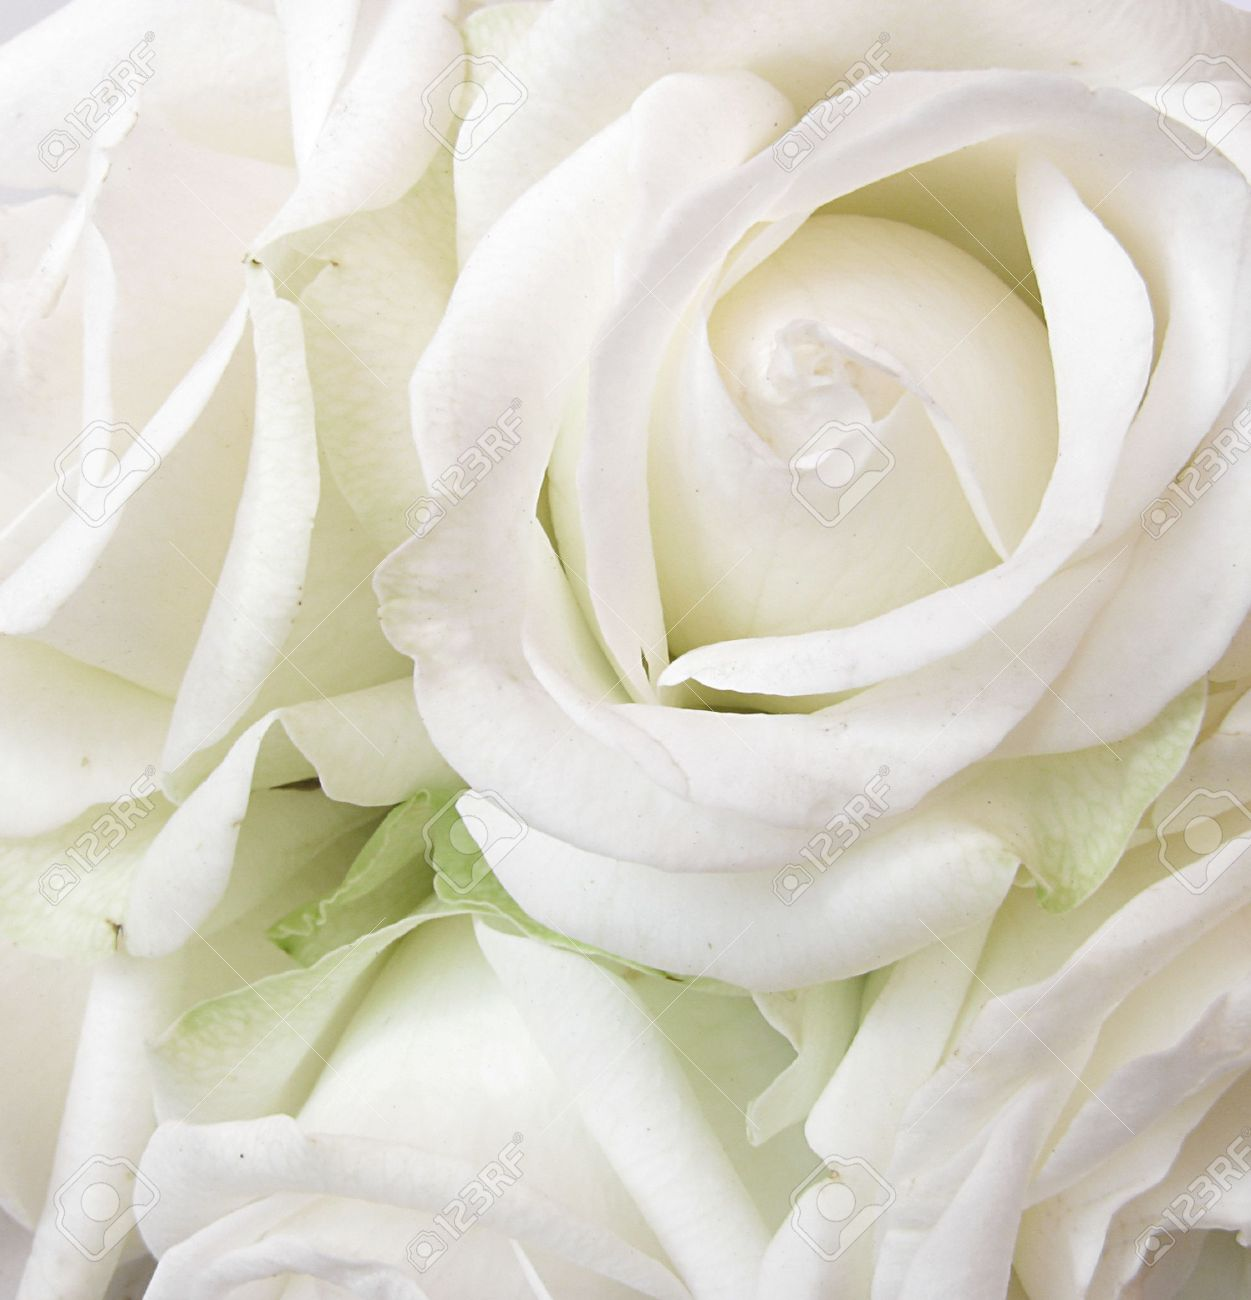 Funeral Background Pictures